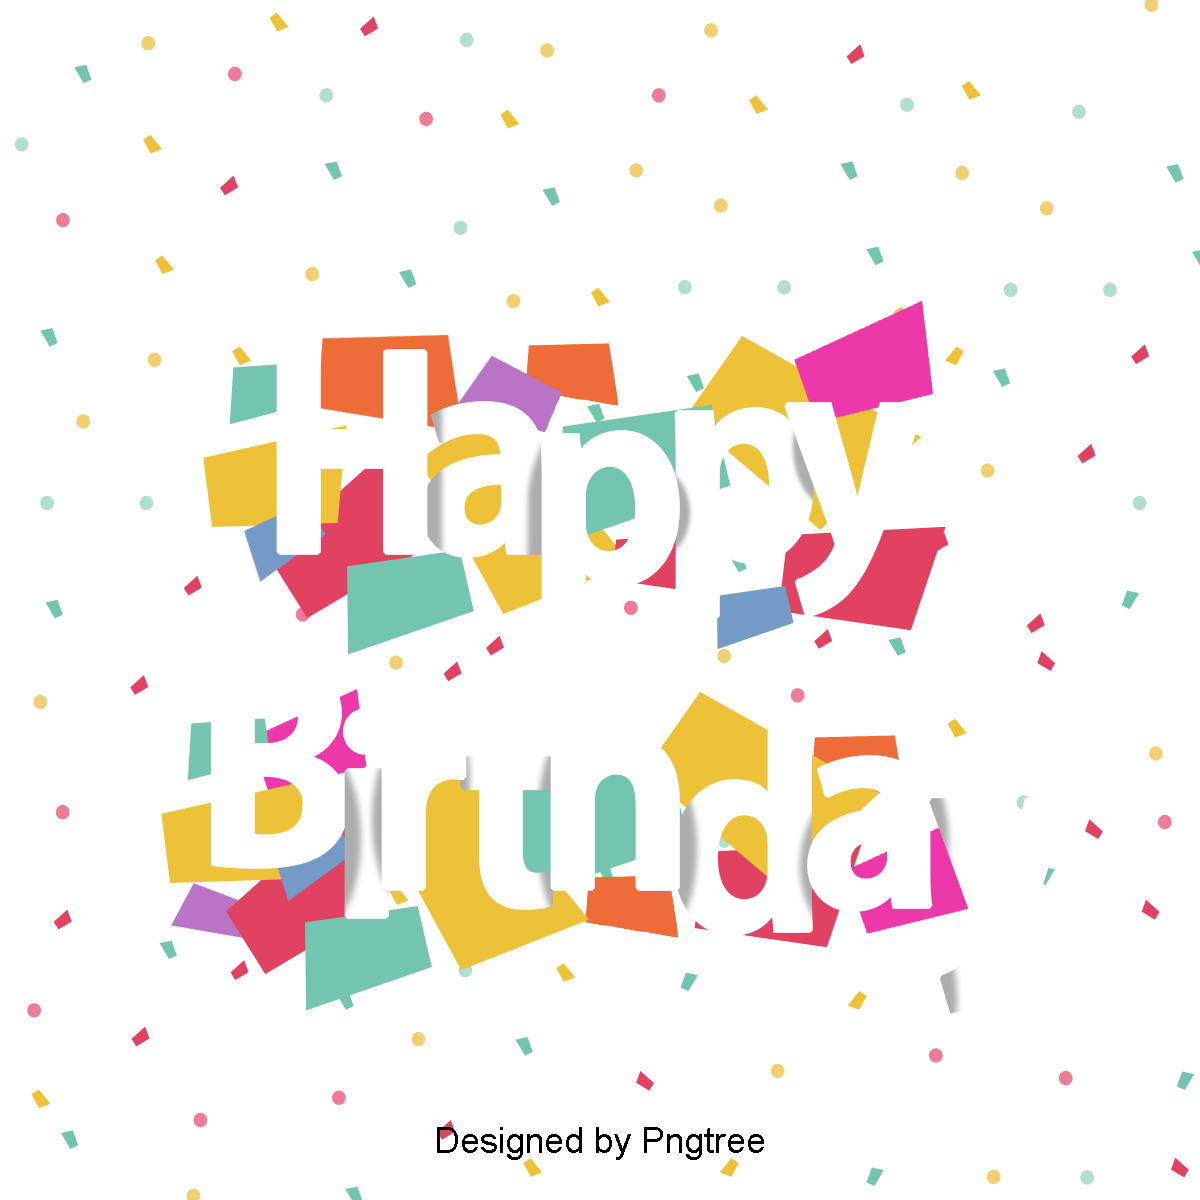 Happy birthday banner background png. Vector english alphabet and